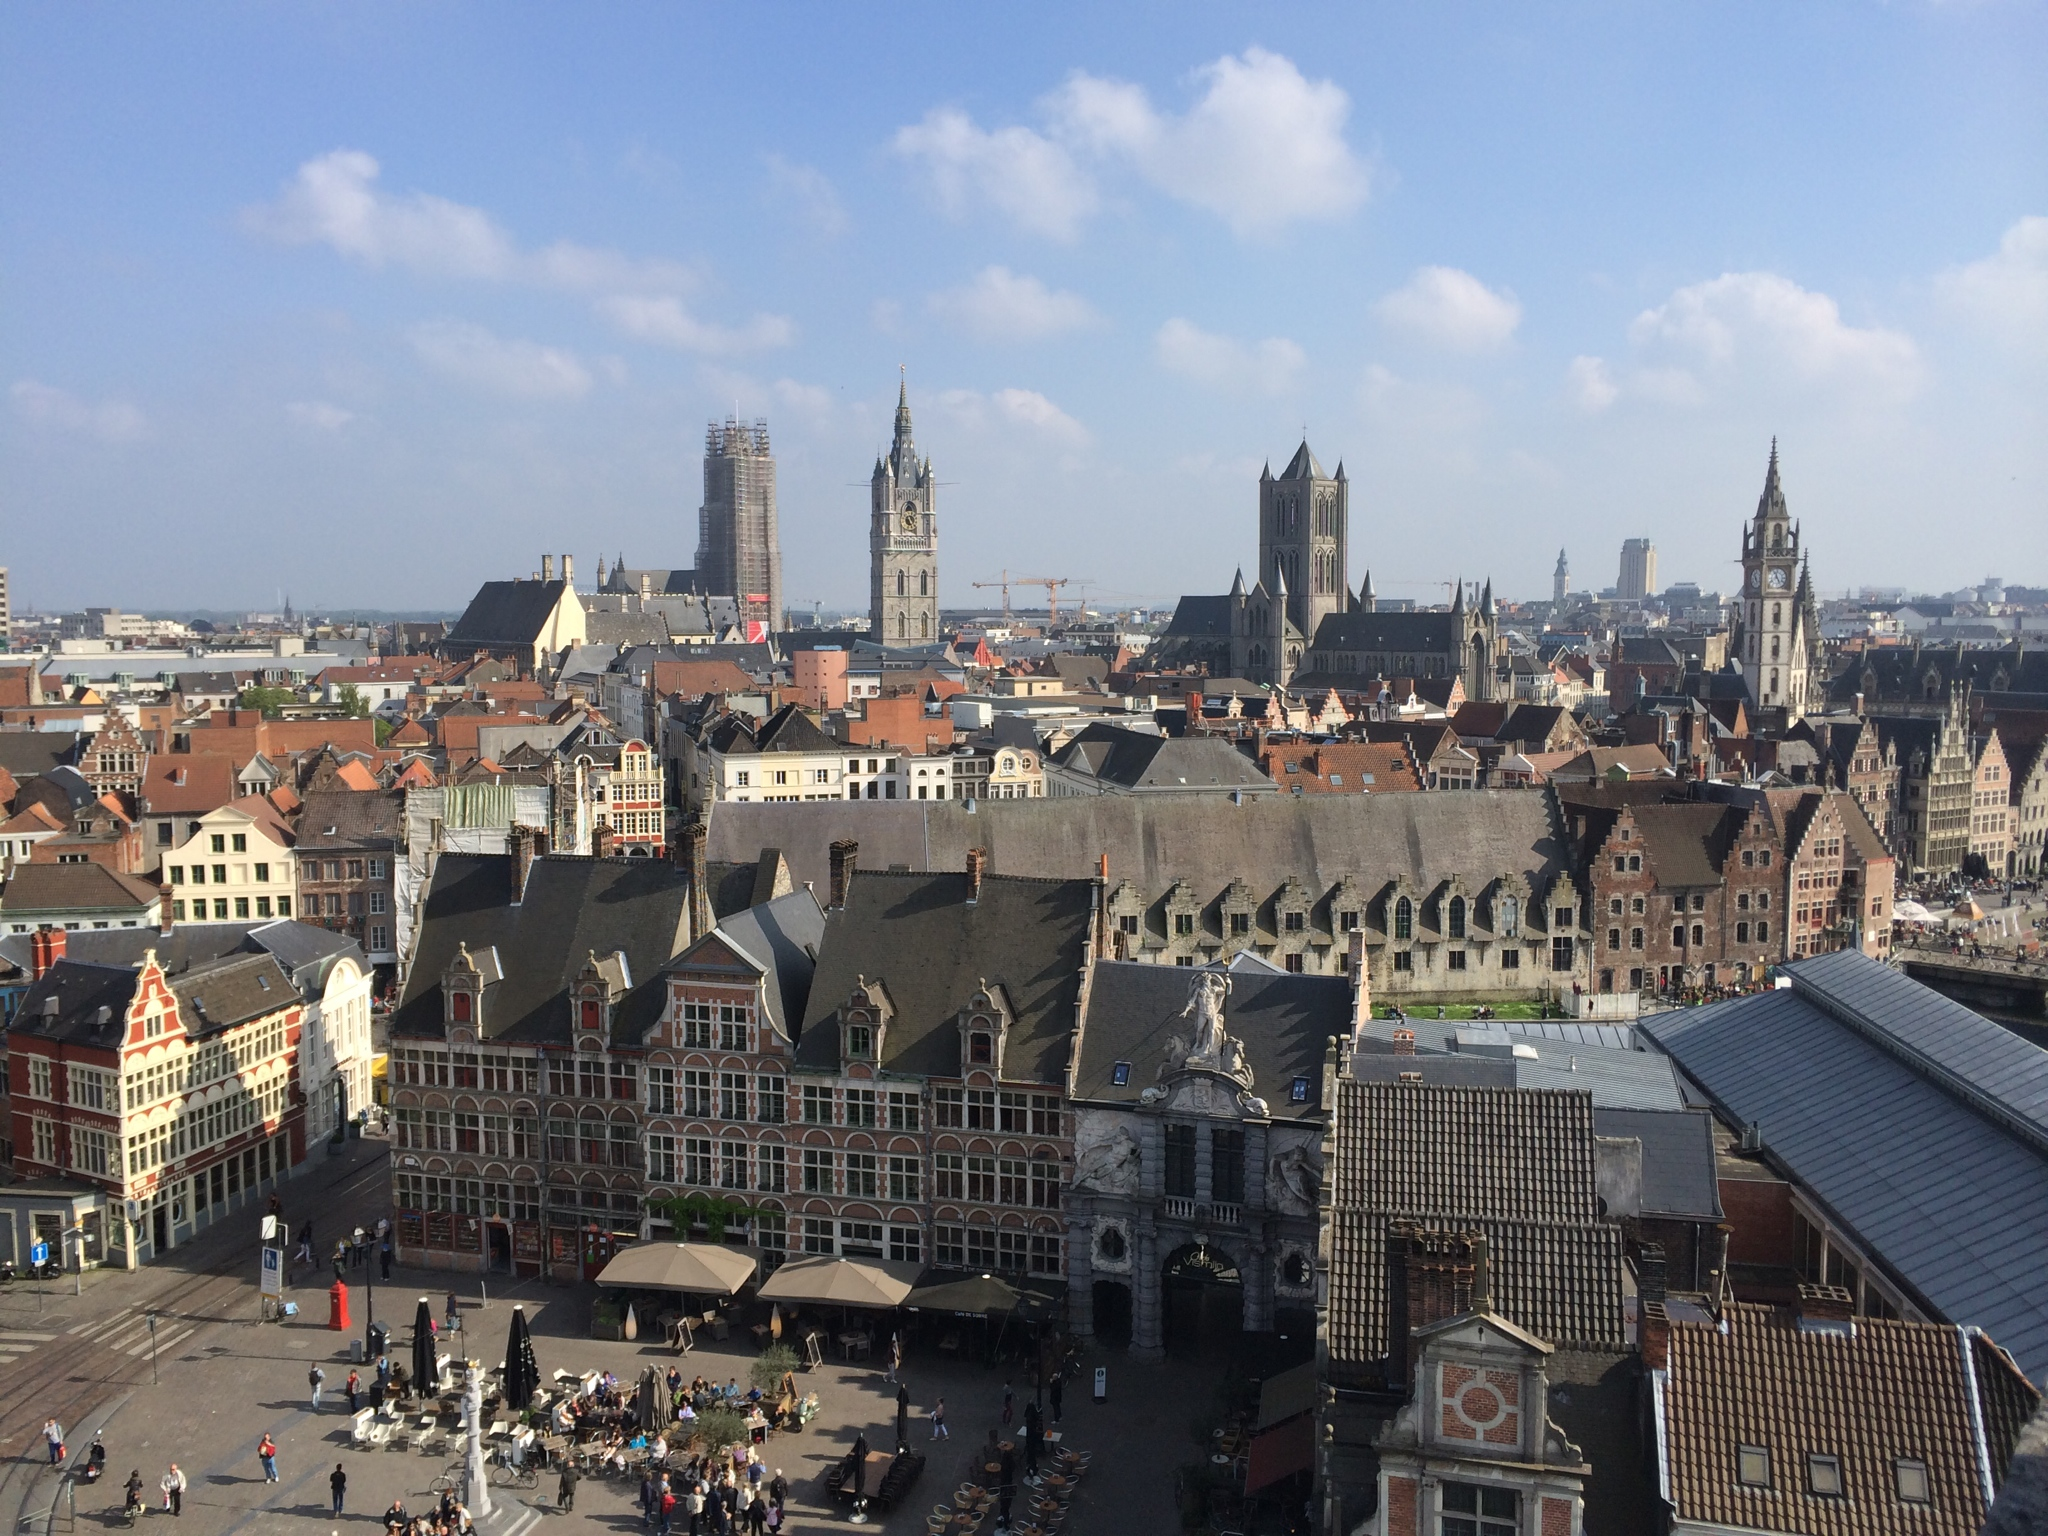 ghent single guys Information for erasmus students in ghent, belgium: accommodation, people,  forums, experiences, photos, the weather, maps  23 year old man, looking for  accommodation in gent  in rooms for rent in shared flats ghent, one month ago.